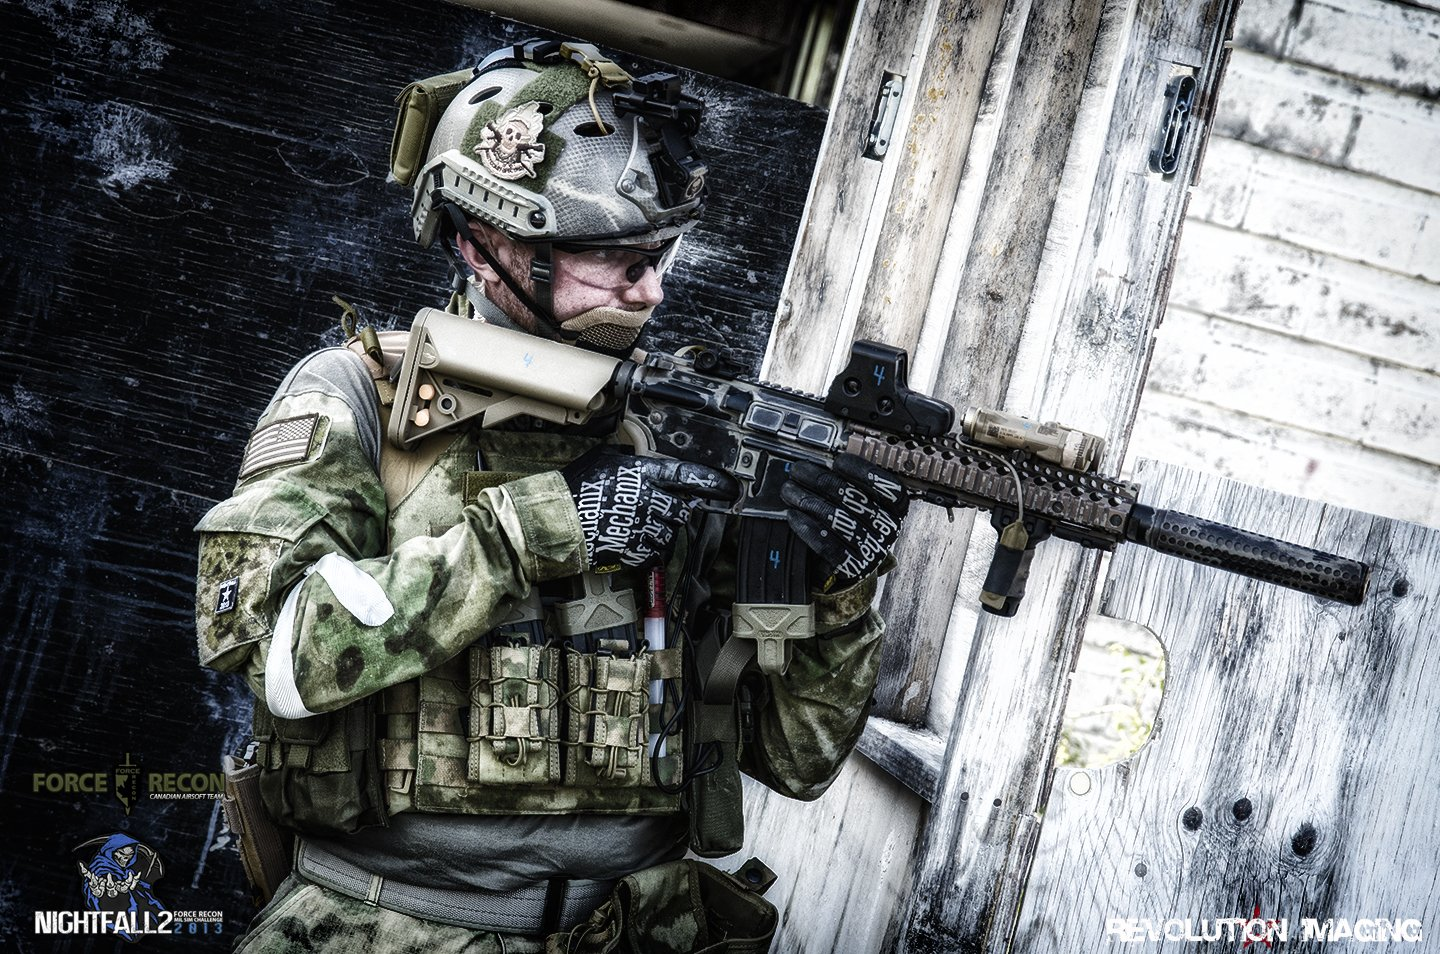 Full HD Quality Airsoft Images for 1440x954